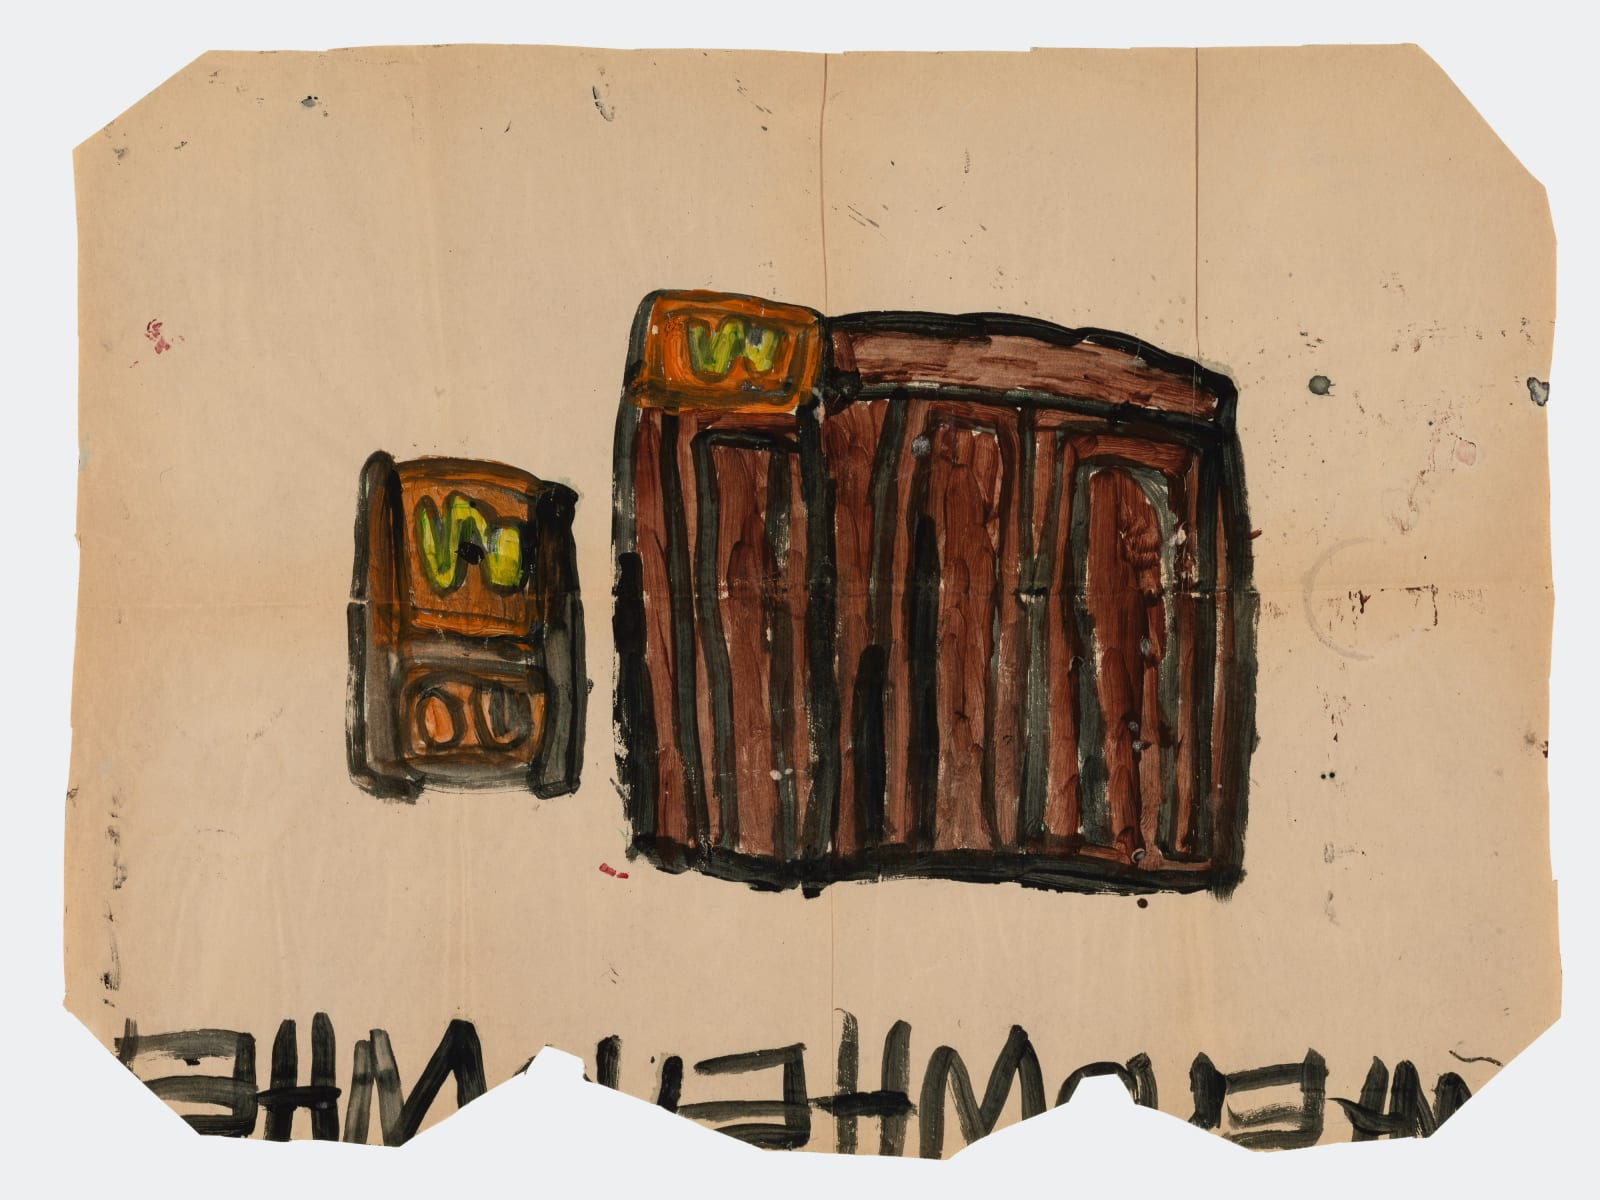 Untitled (No.20), 1972-1980 Tempera on paper 21 x 28 in (53.3 x 71.1 cm) (LM 168)